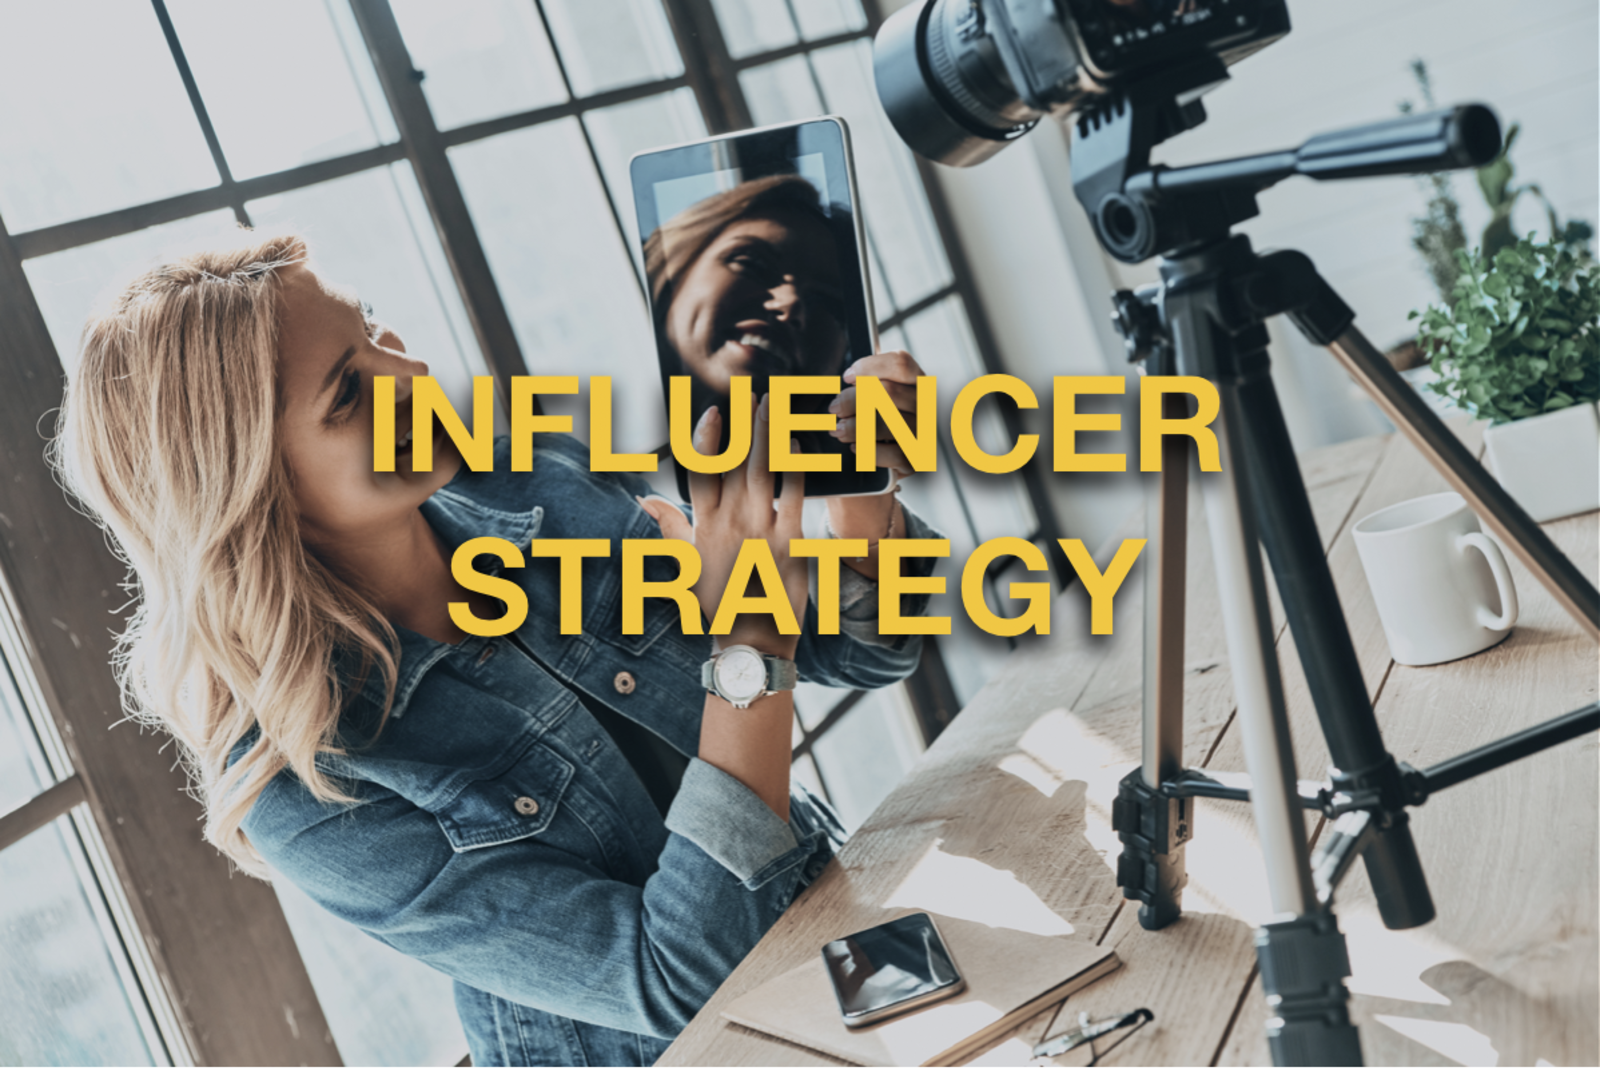 LMG Media Launches New Lifestyle Influencer Marketing Services